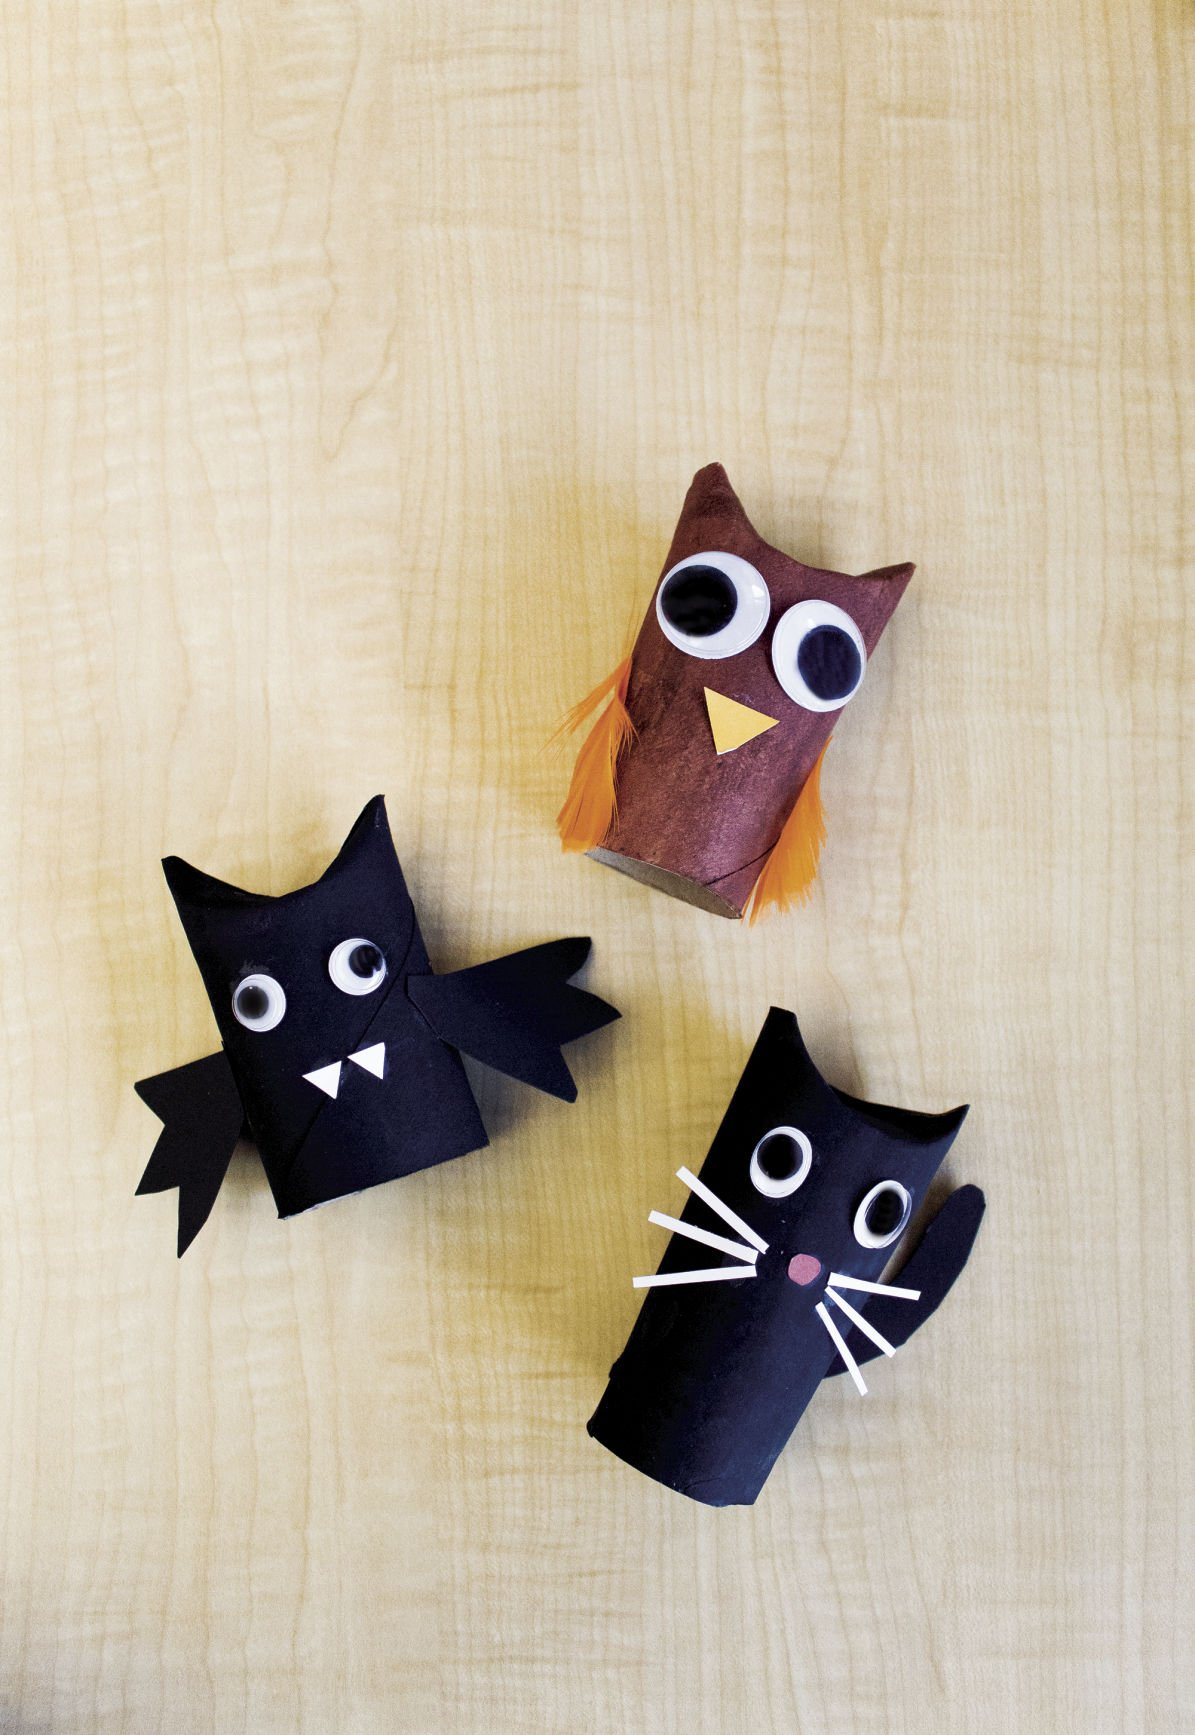 easy halloween crafts made from supplies you already have at home